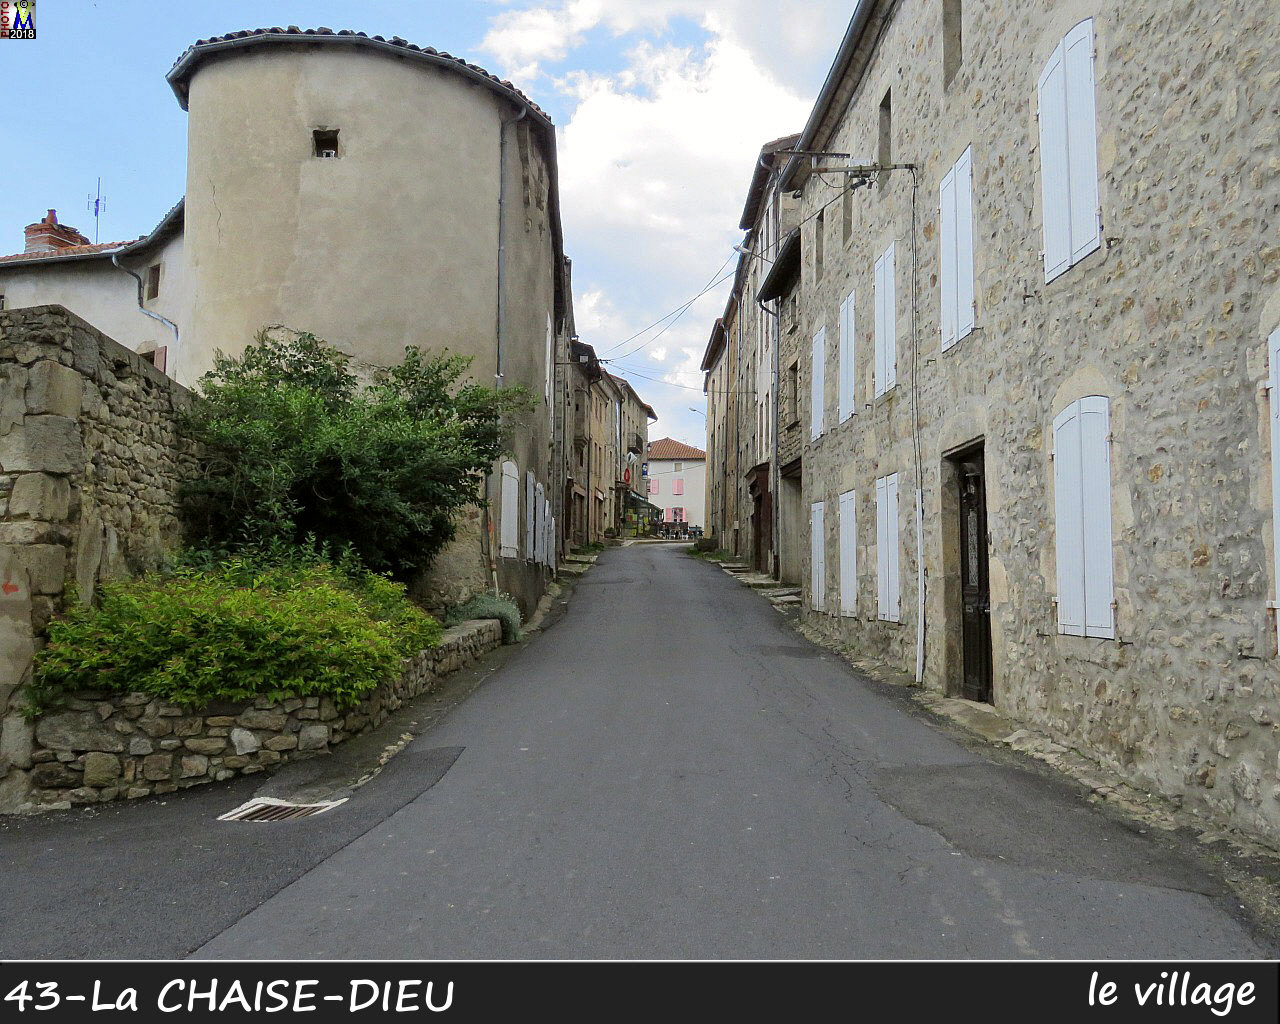 43CHAISE-DIEU_village_114.jpg